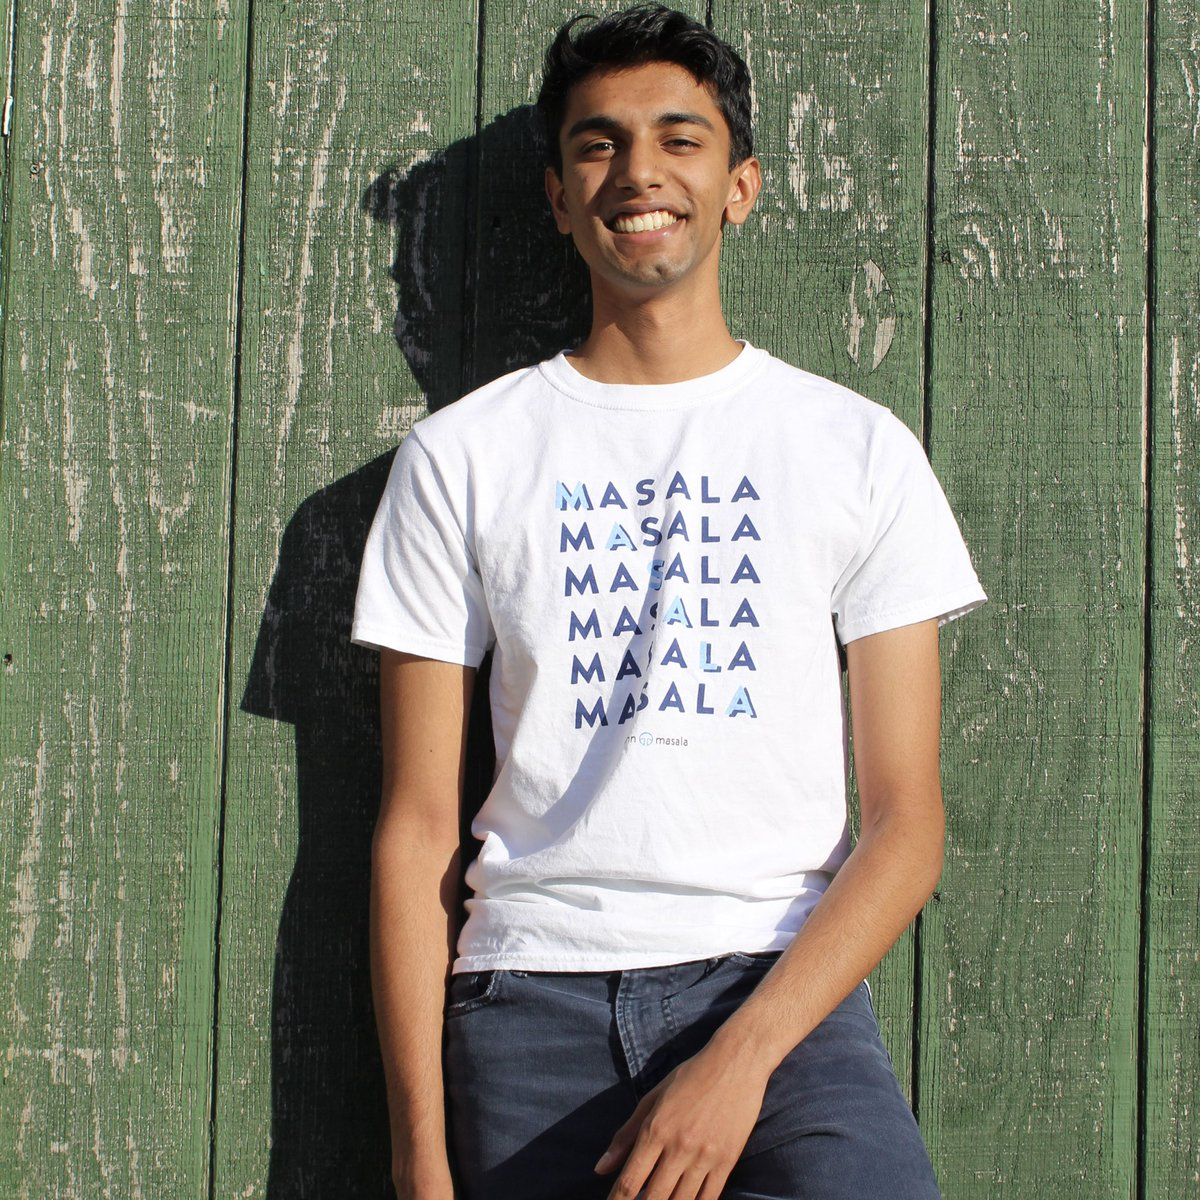 """get your masala merch at the link below! for the next 3 days, use the code """"MASALA20"""" to get 20% off 😳"""